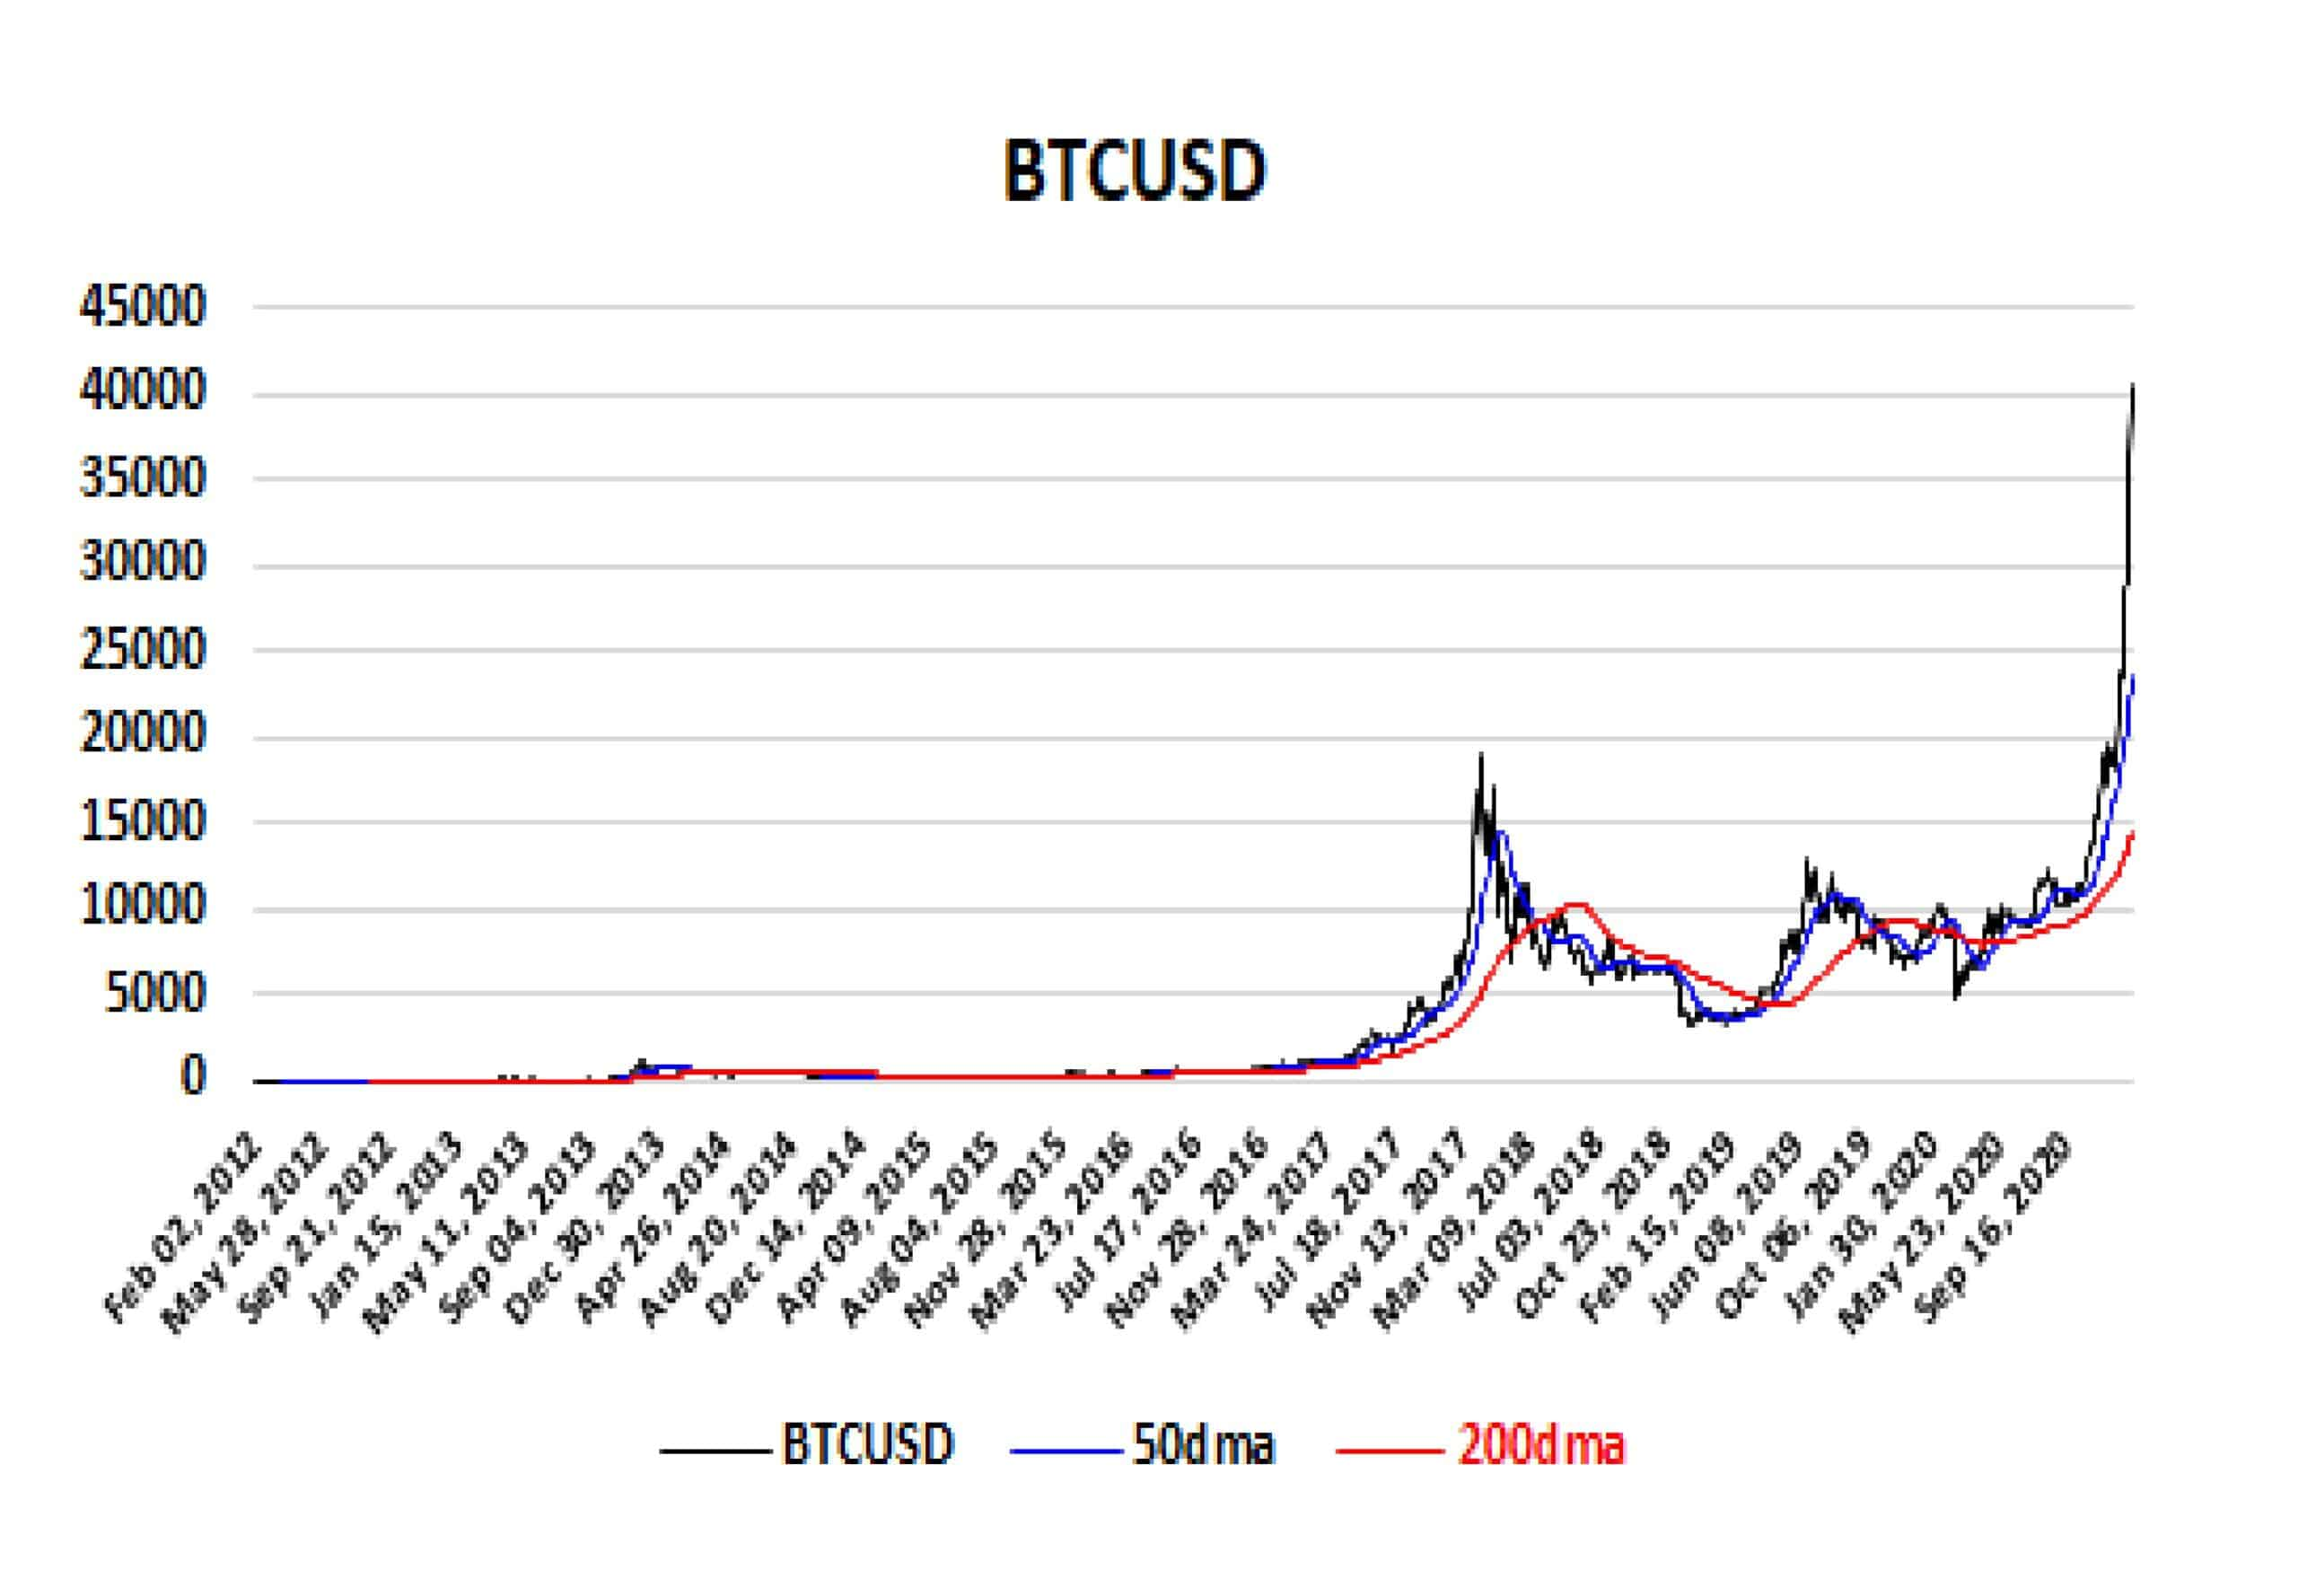 BTCUSD; A Parabolic Ride Fueled By FOMO Image